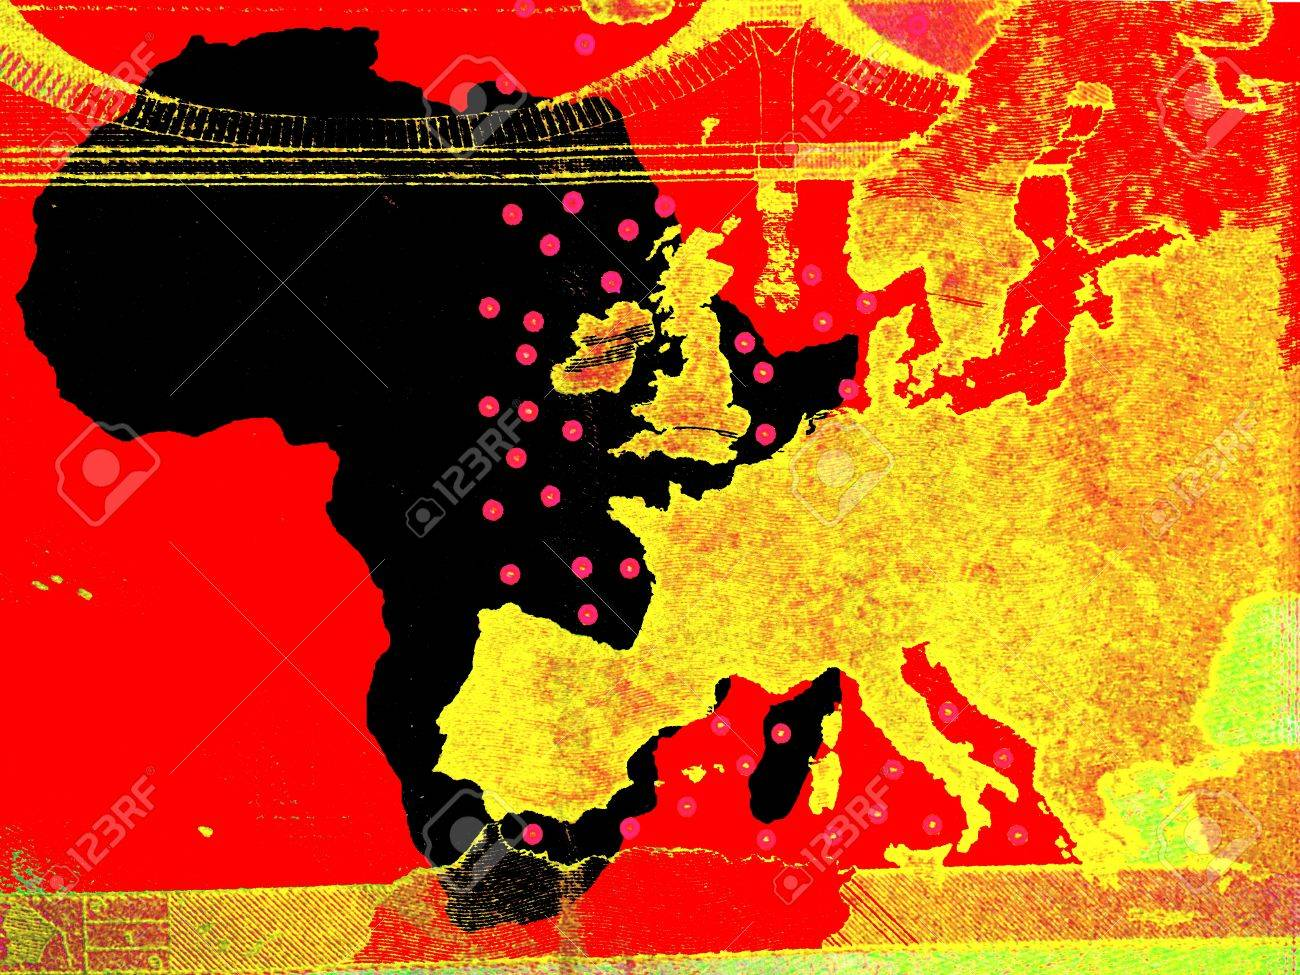 The African policy of Europe - A European map in golden colors is right of the African continent in black. Background: red. - 70302972